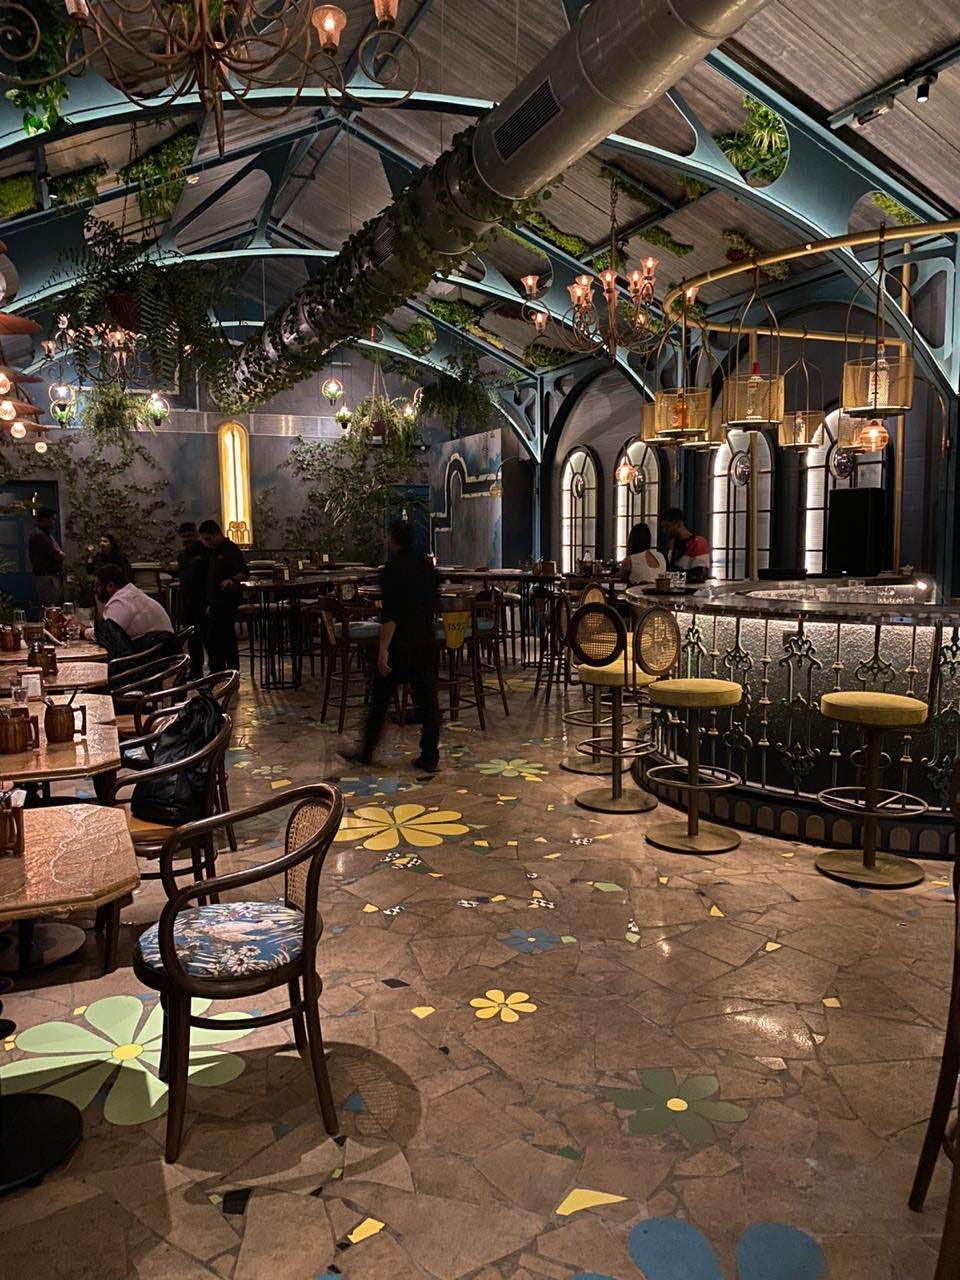 Visit This New Classy, Lit Place In Andheri With Your Friends For Some Amazing Drinks And Food